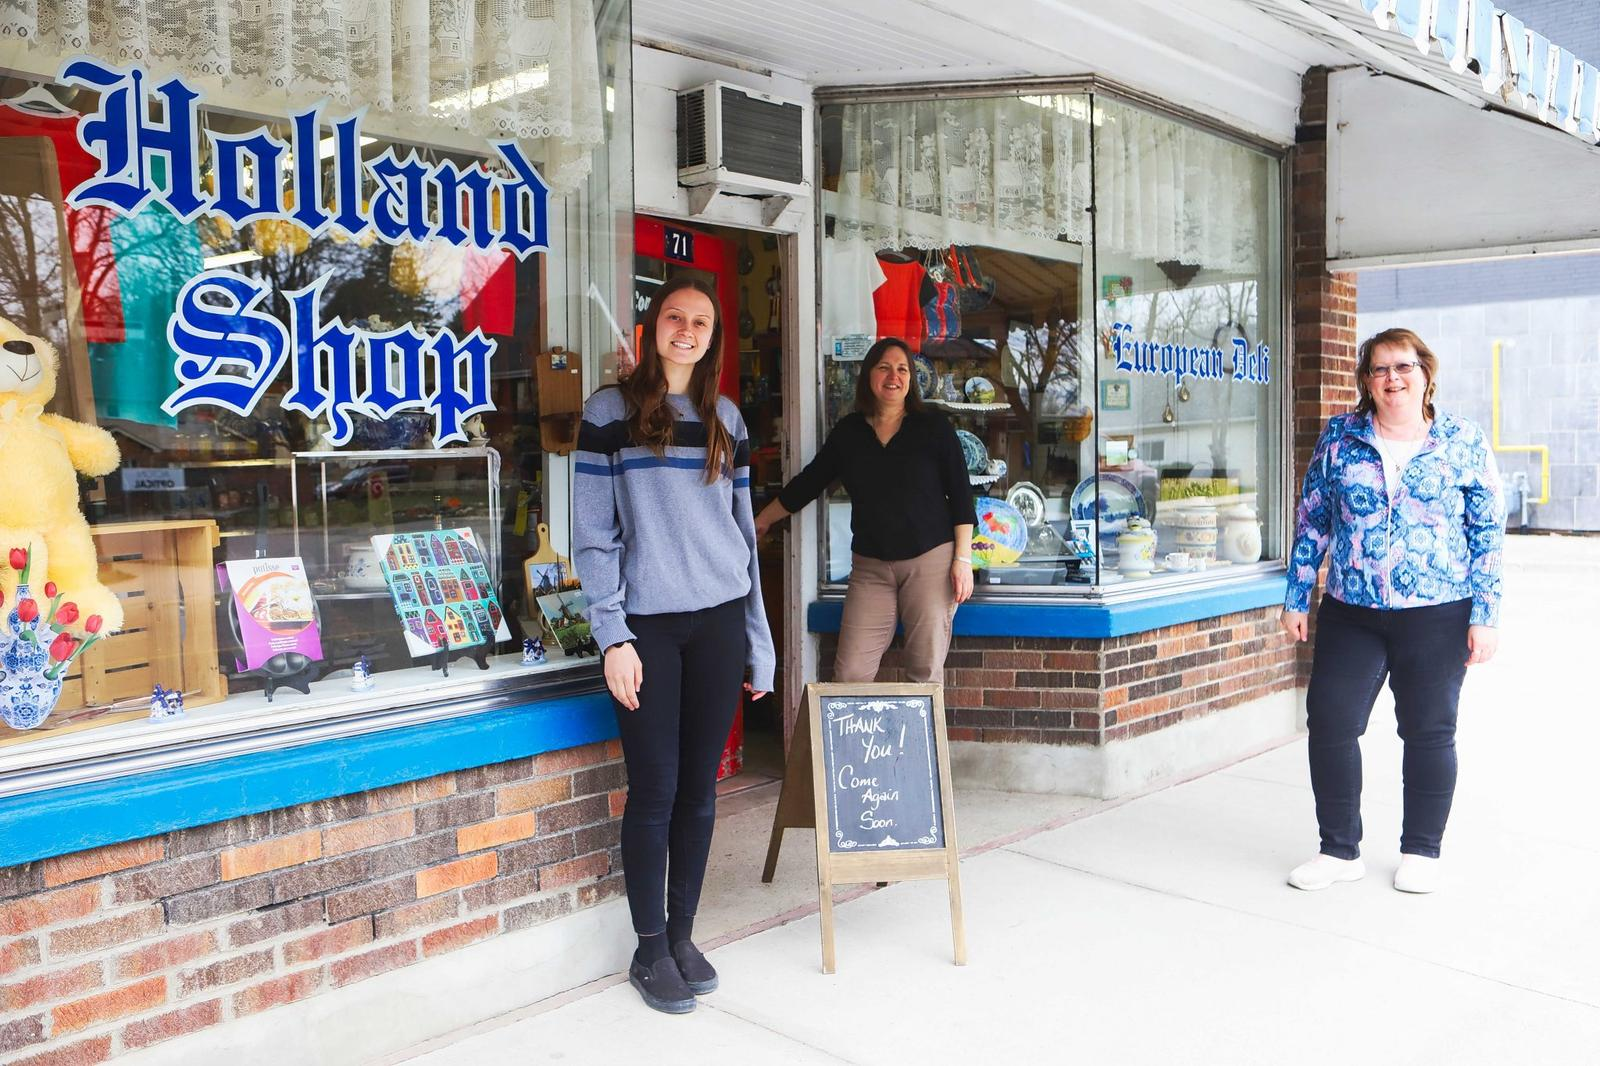 Holland Shop is Business of the Week